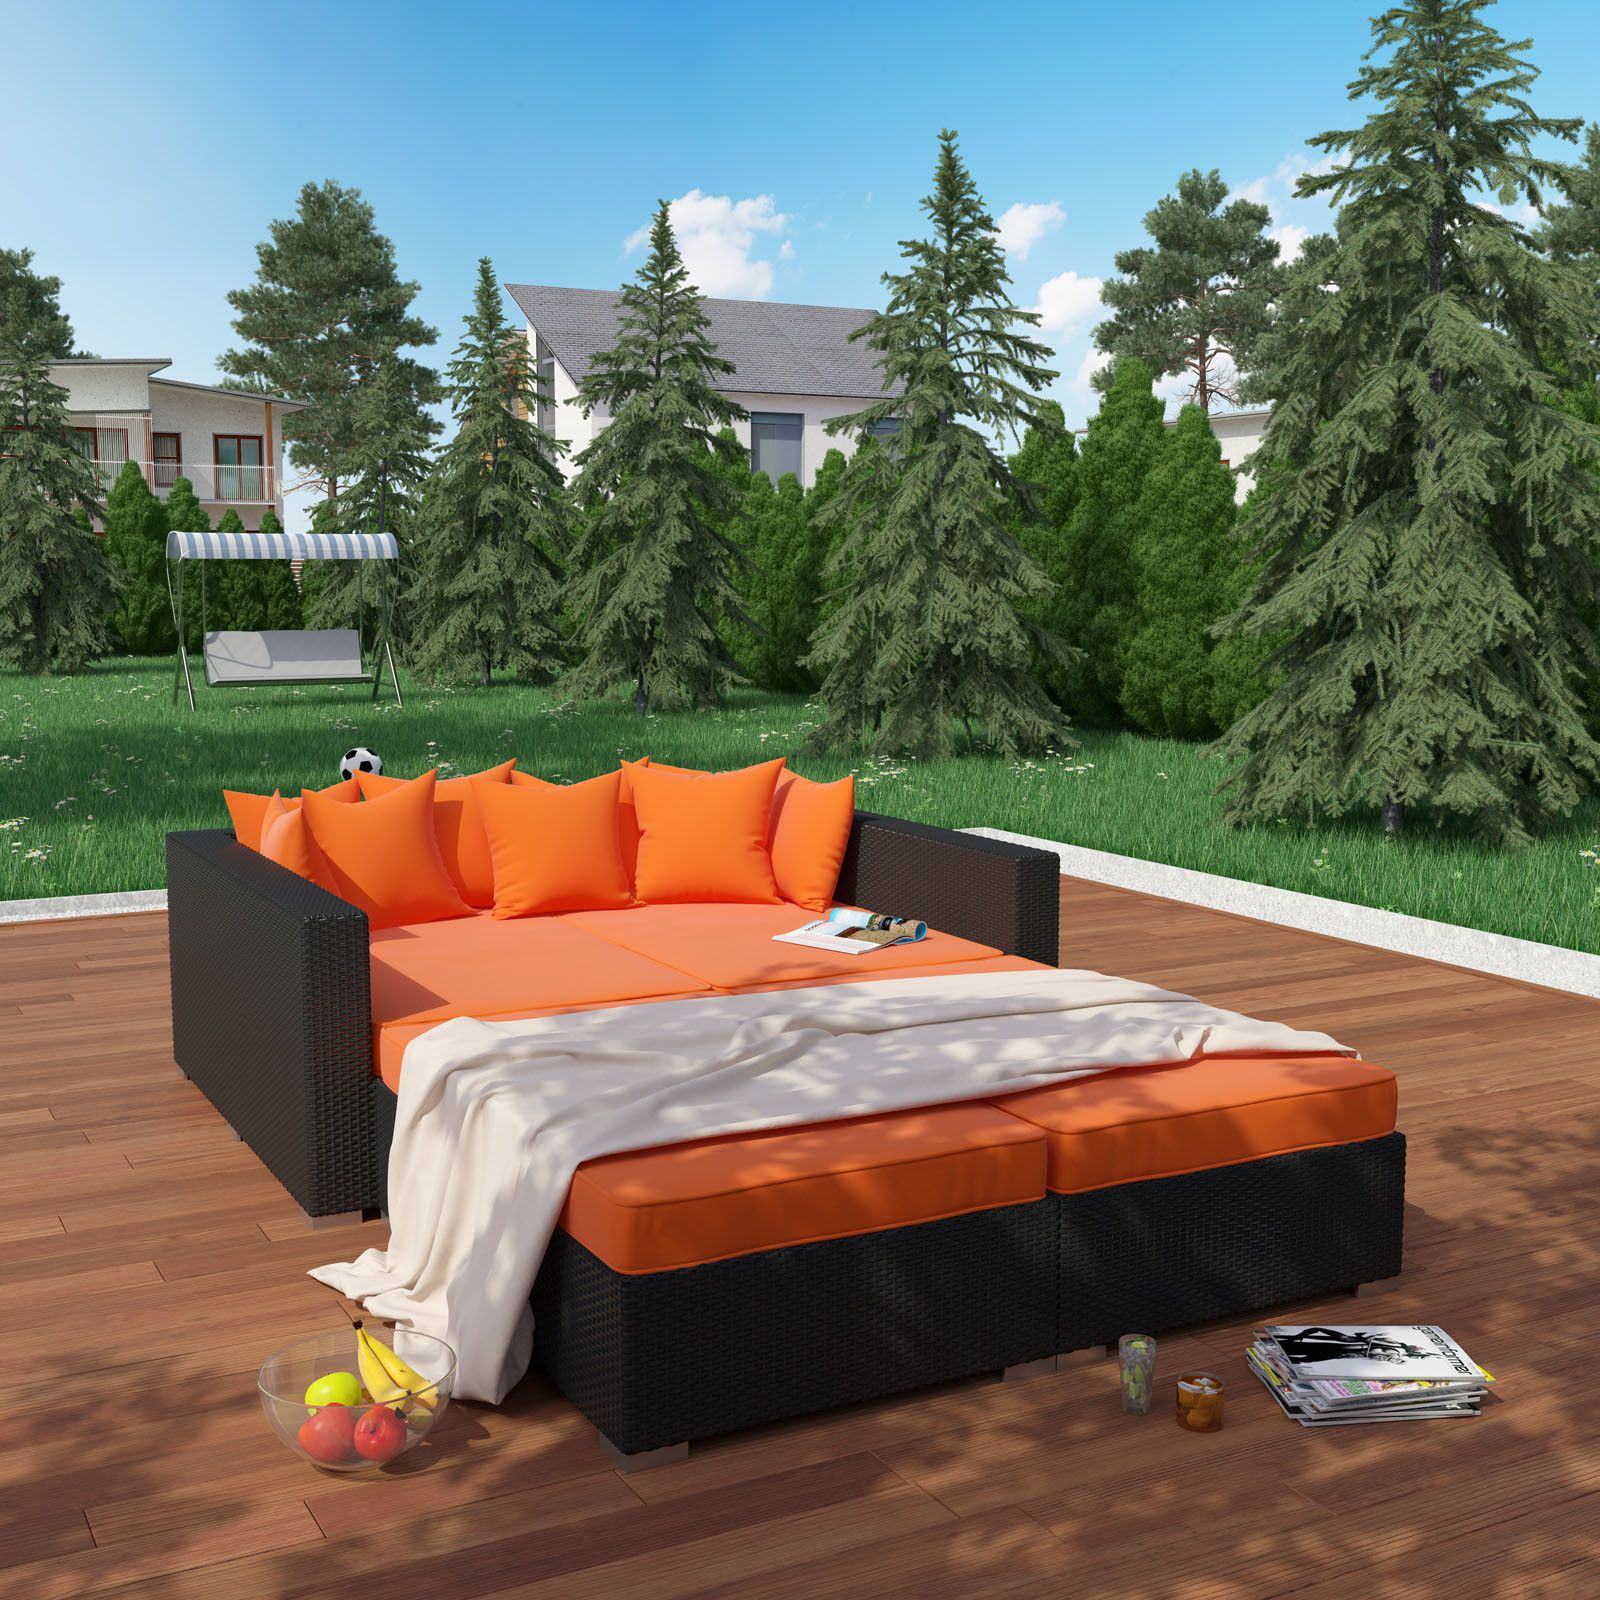 Who Is Ready For A Nap Sleep Outside On This Amazing